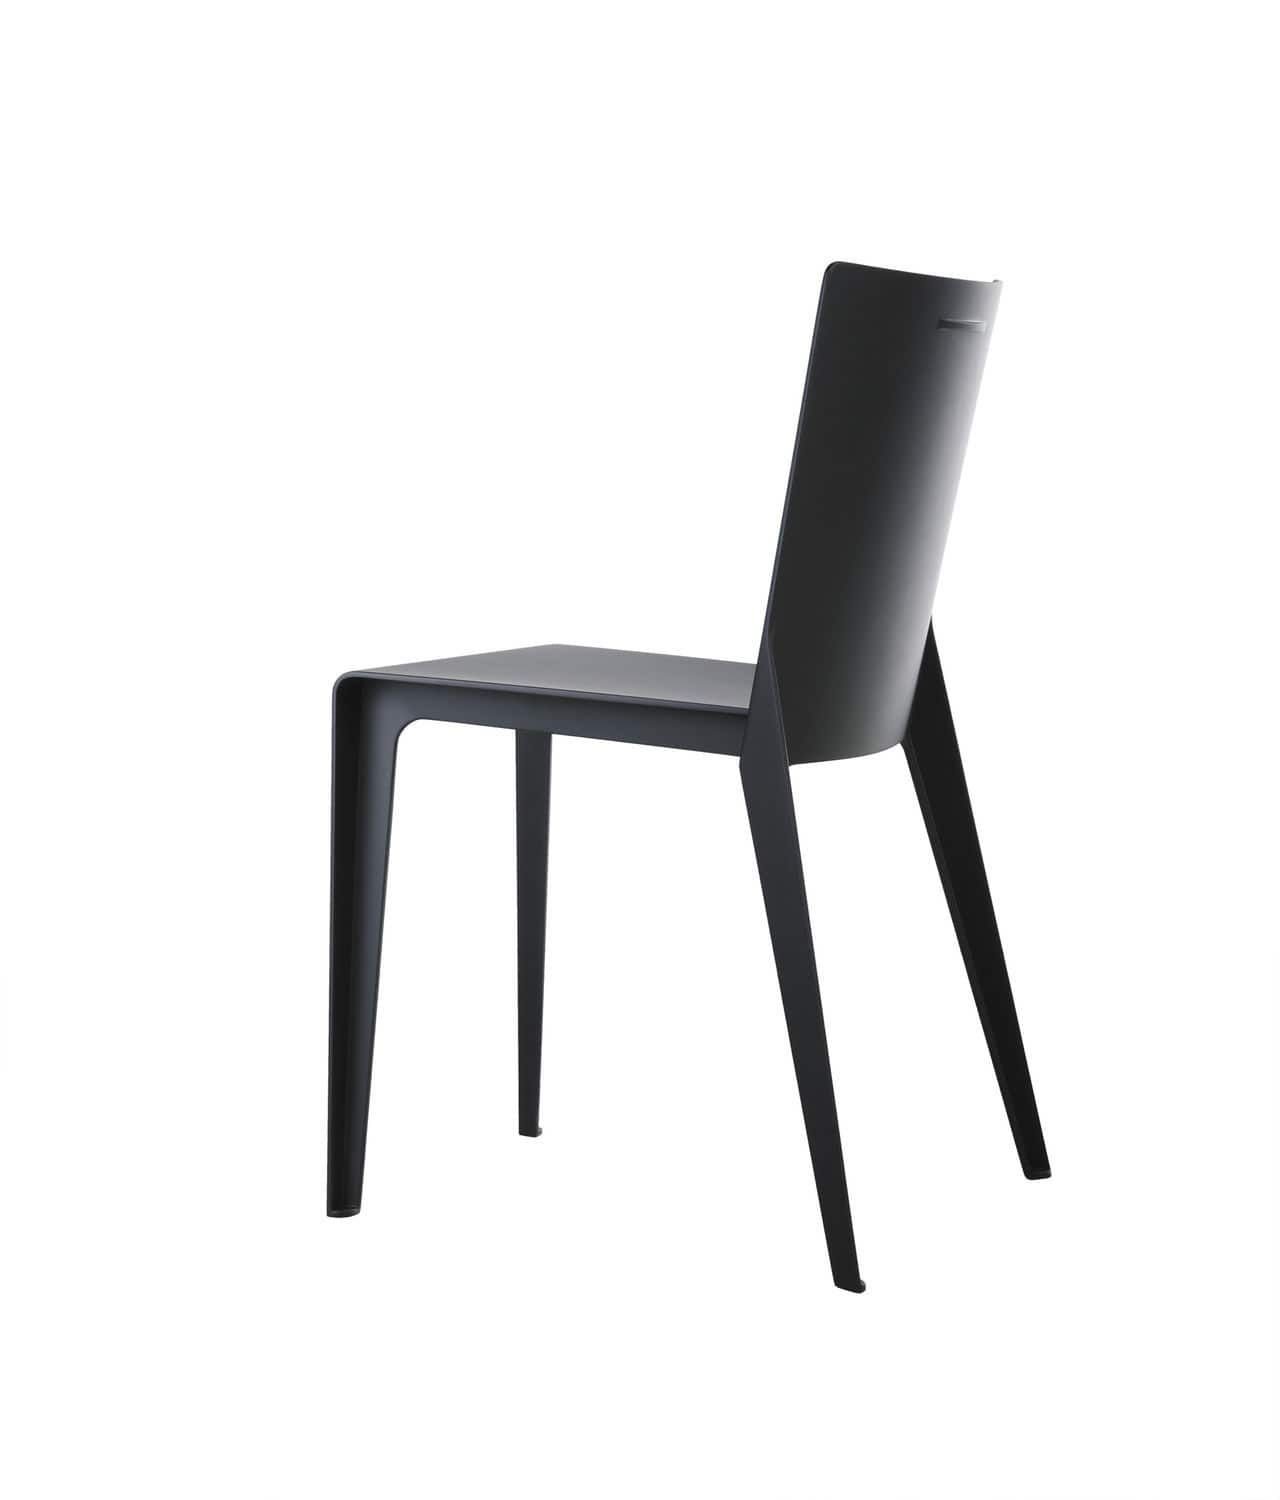 Contemporary chair composite material by hannes